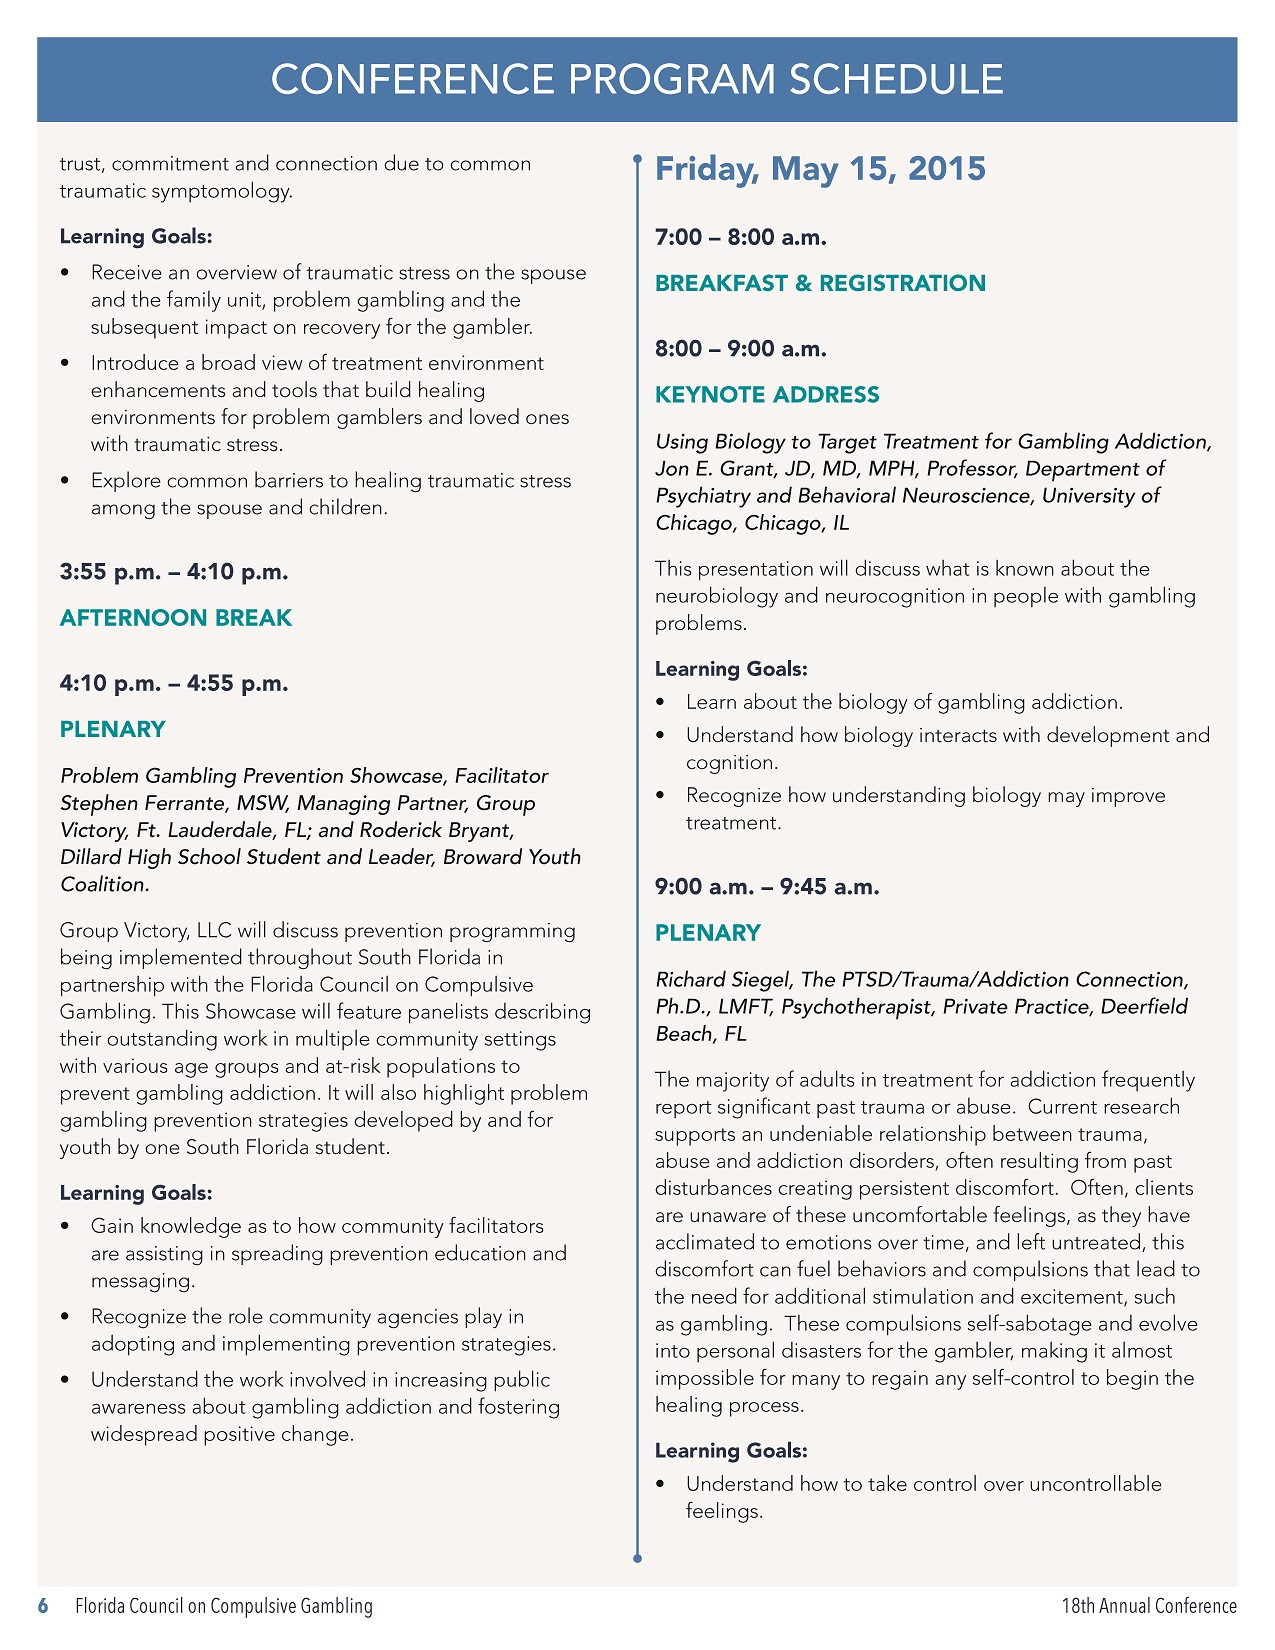 18th Annual Conference Program Schedule_Page_4